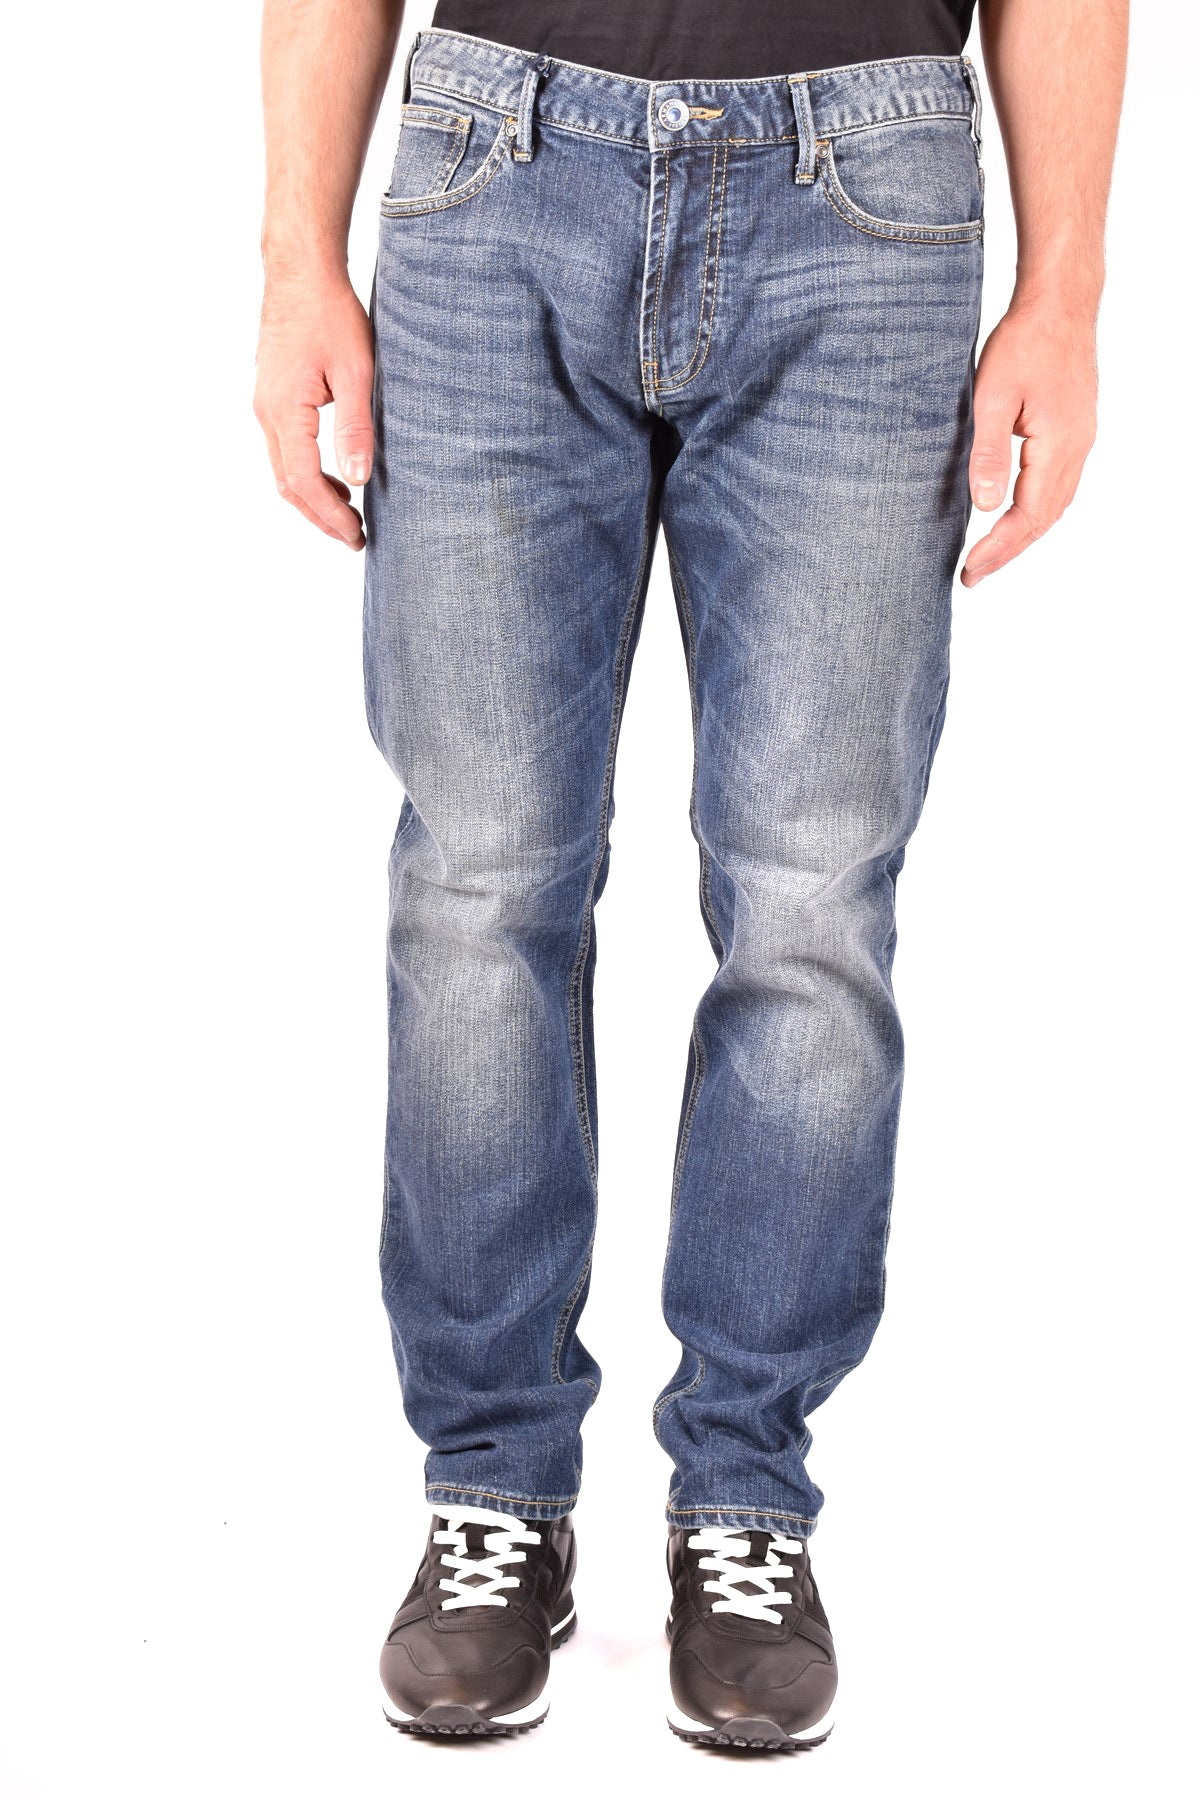 Jeans Armani Jeans-Men's Fashion - Men's Clothing - Jeans-Product Details Terms: New With LabelClothing Type: JeansMain Color: BlueSeason: Fall / WinterMade In: ChinaGender: ManSize: UsComposition: Cotton 99%, Elastane 1%Year: 2019Manufacturer Part Number: Z6J83 1C 15-Keyomi-Sook